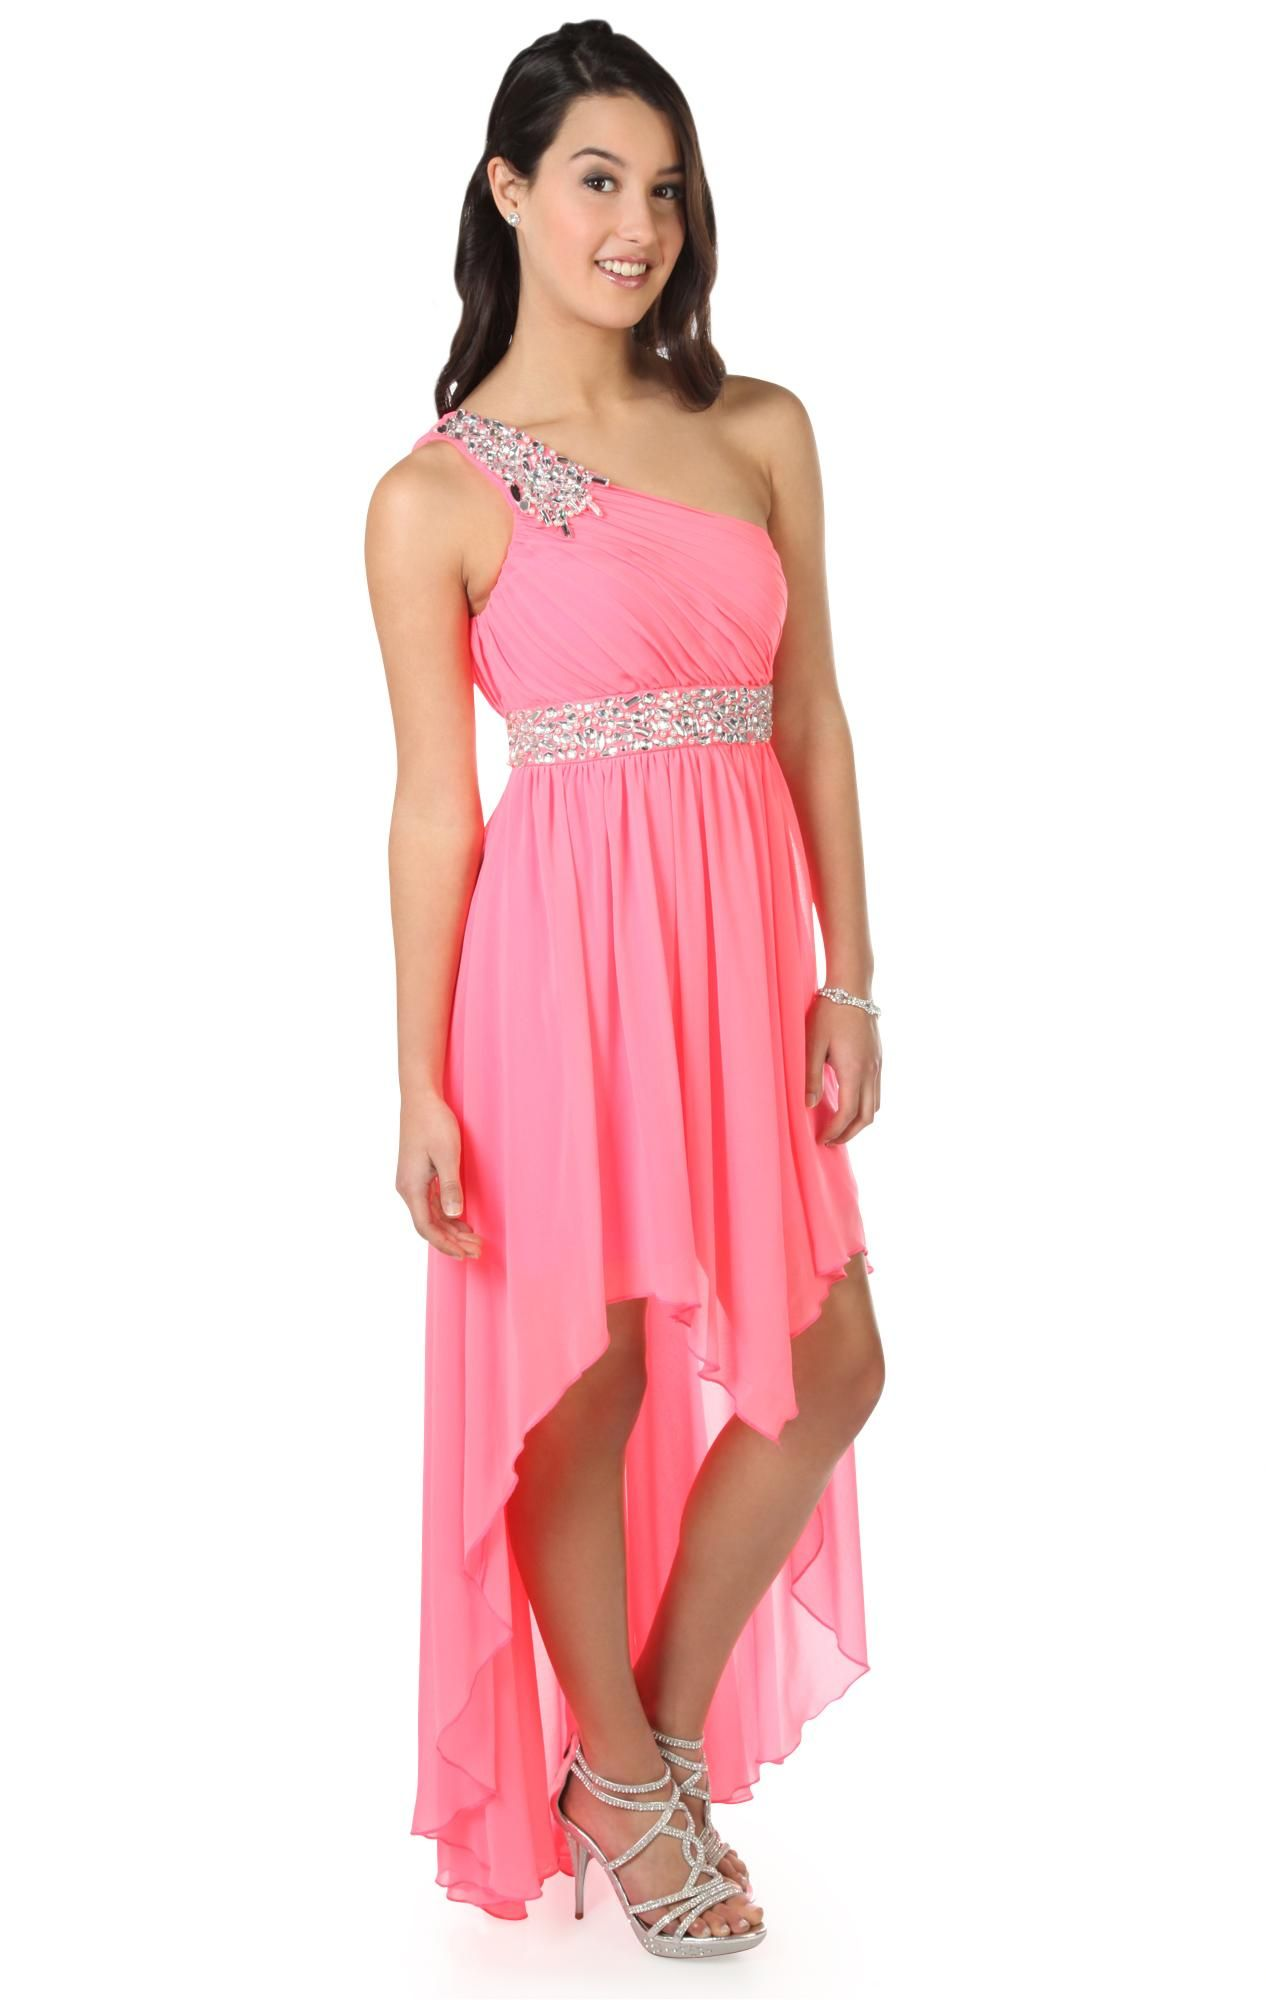 131daf6d46f Deb Shops  neon  pink one shoulder  prom  dress with beaded detail and high  low hemline